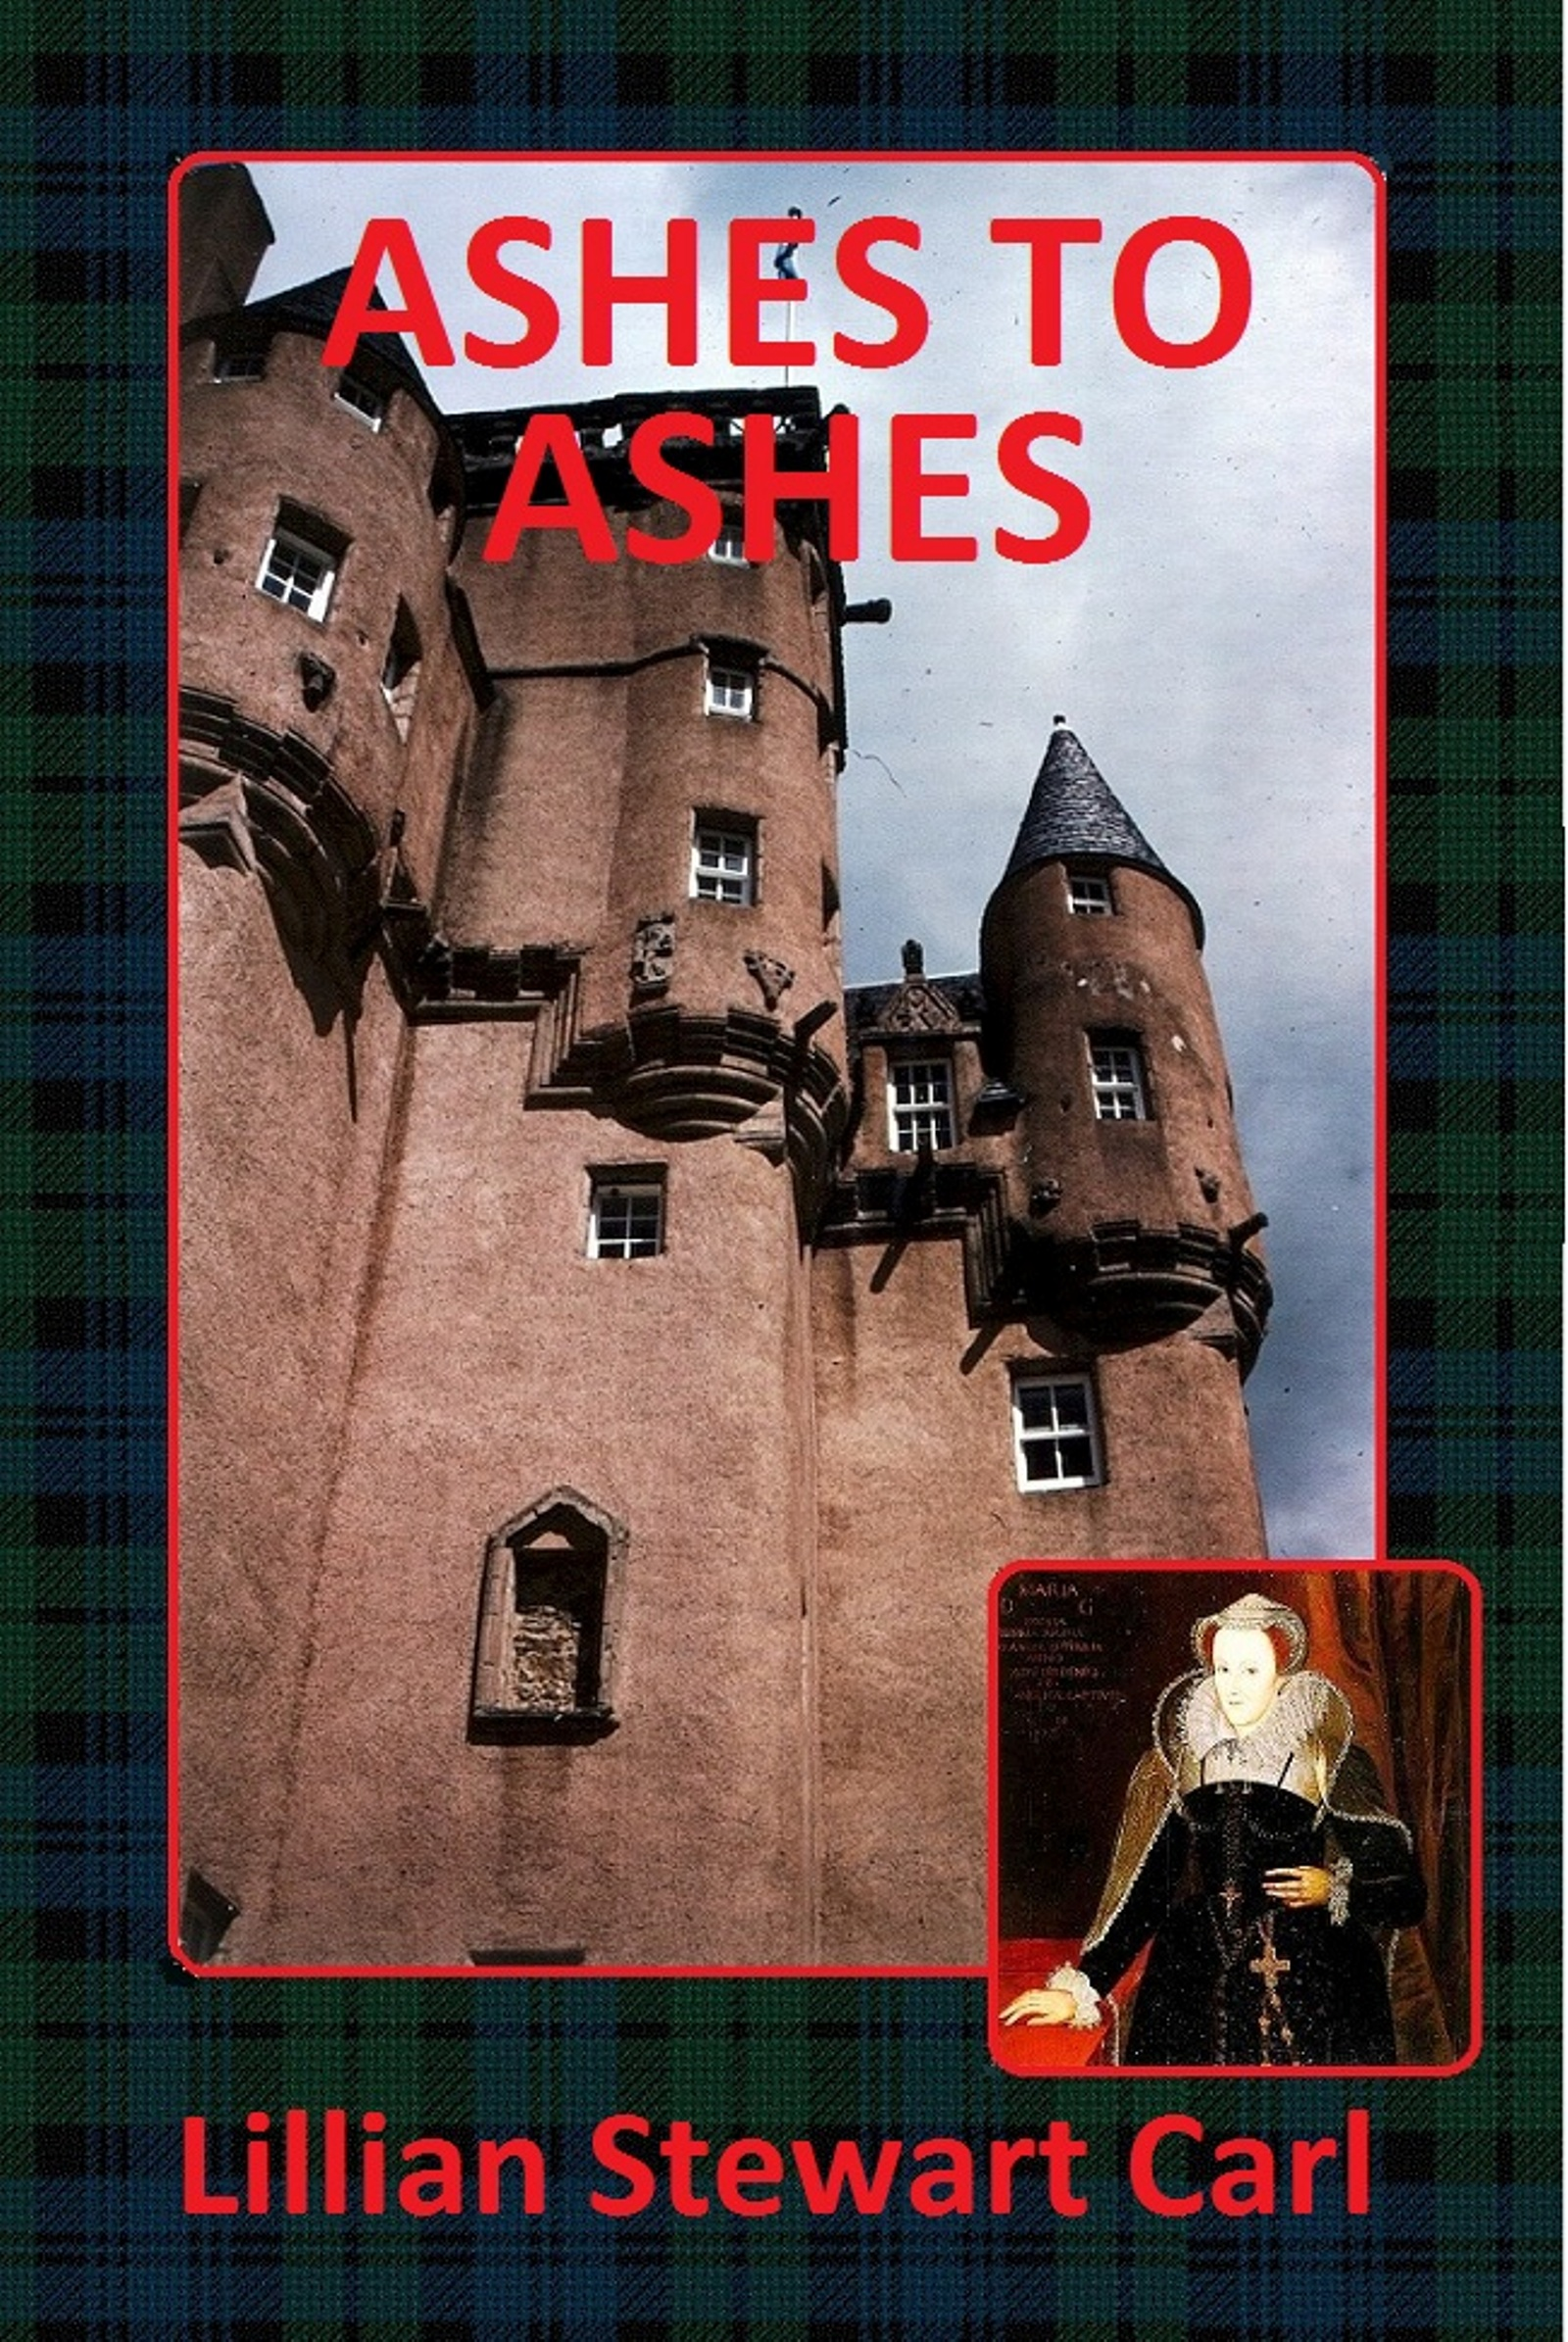 Ashes to Ashes, an Ebook by Lillian Stewart Carl